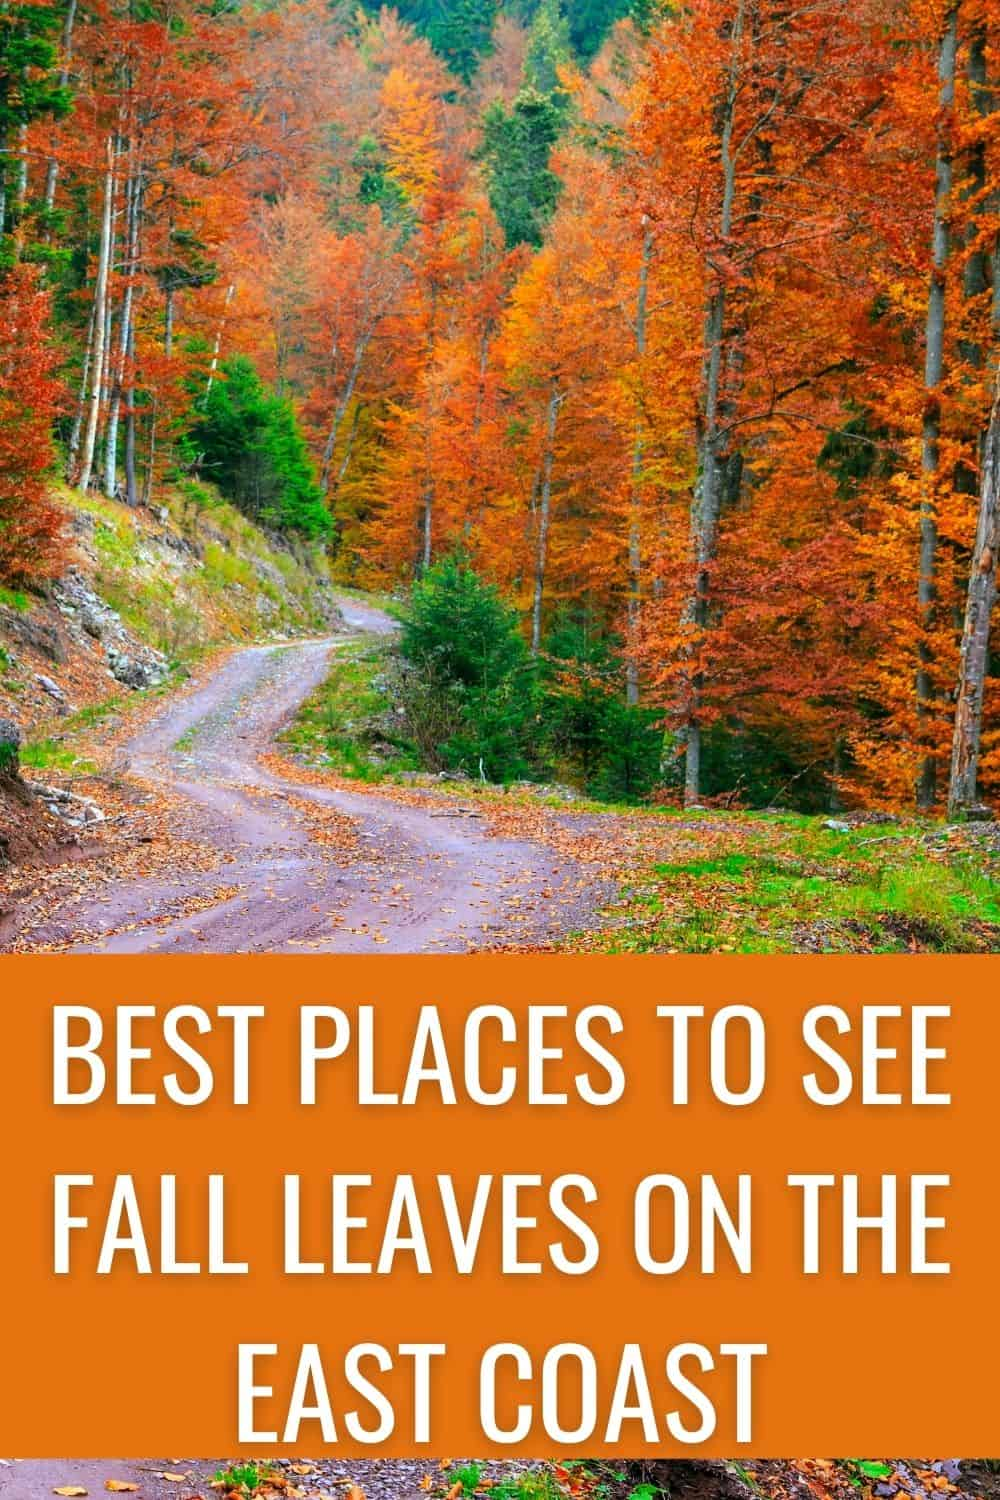 Best places to see fall leaves on the East Coast